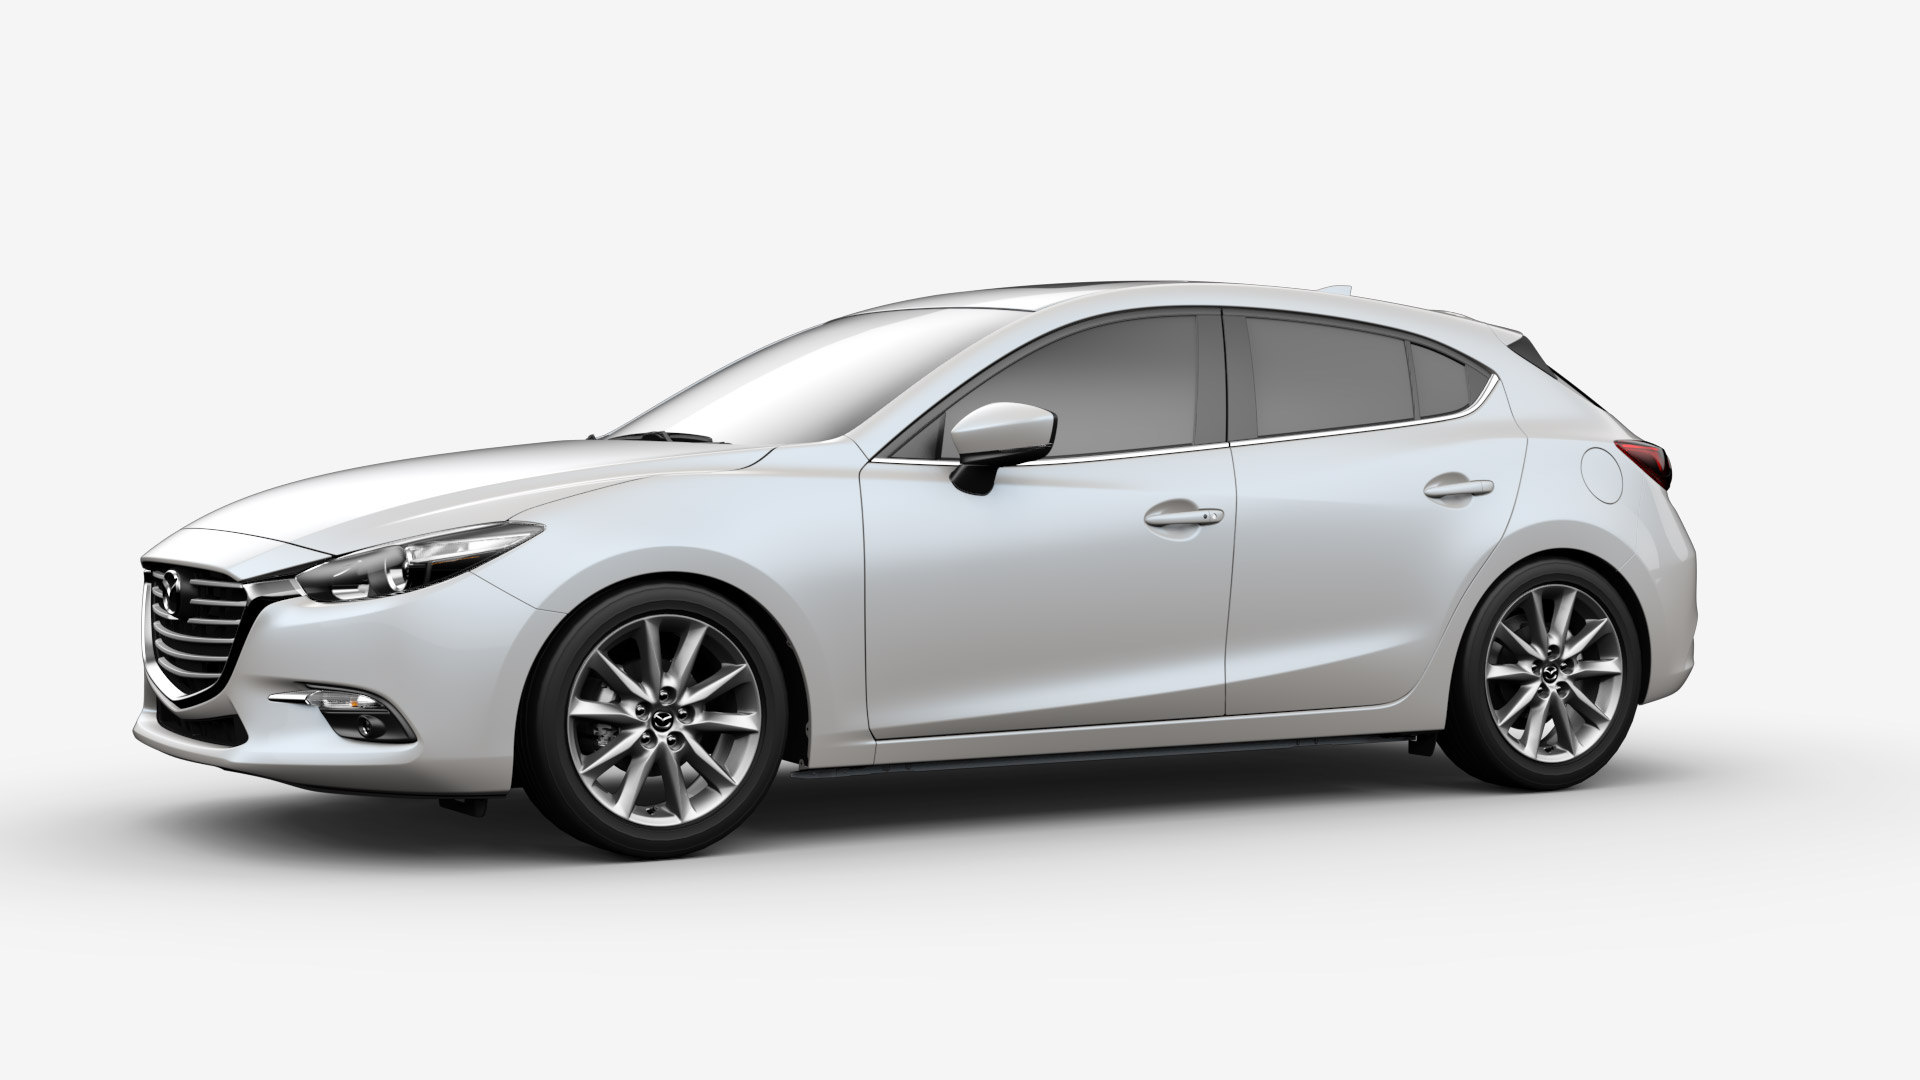 2017 mazda 3 hatchback white pictures to pin on pinterest pinsdaddy. Black Bedroom Furniture Sets. Home Design Ideas